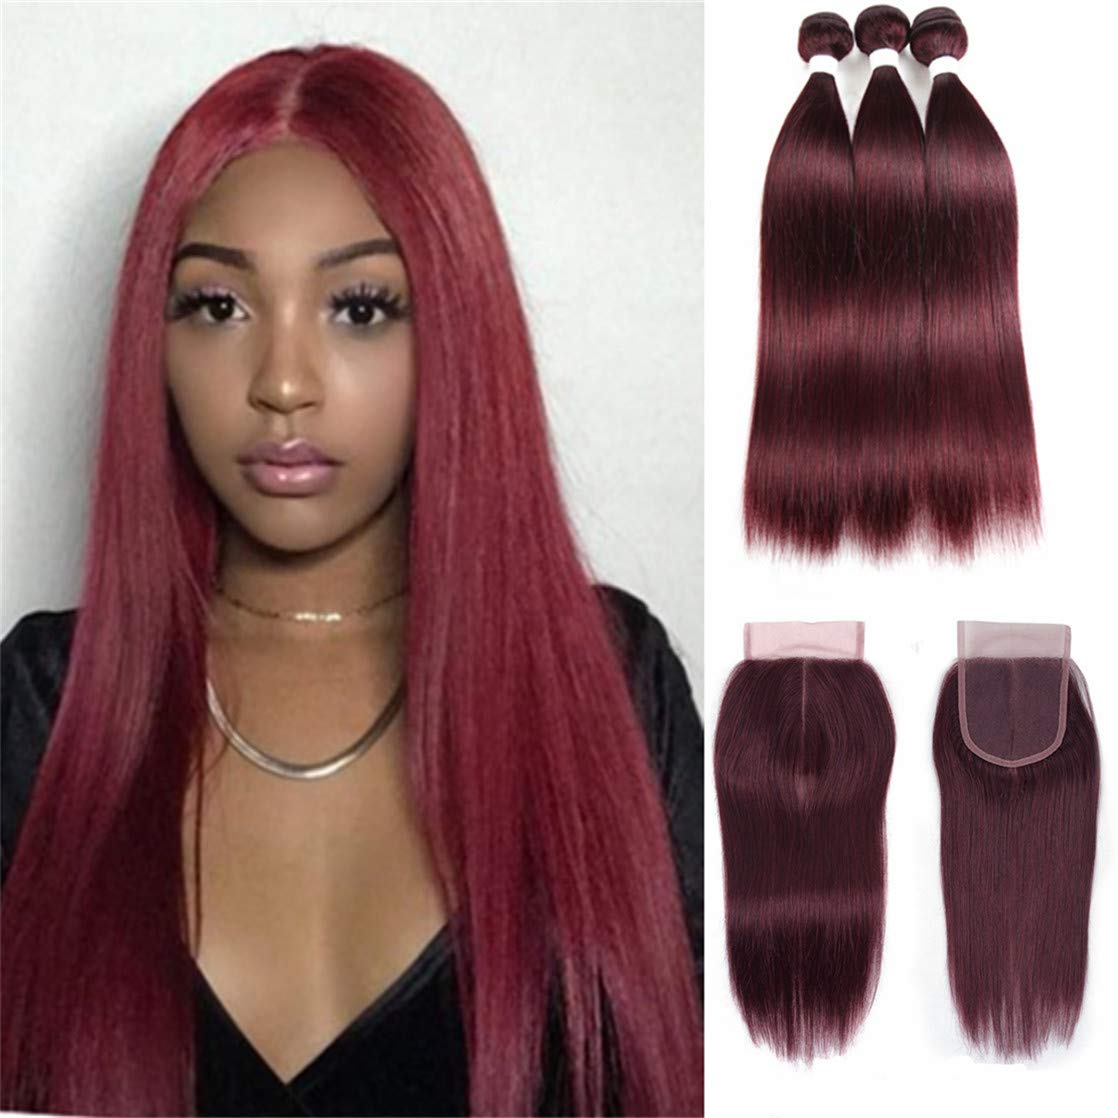 Brazilian Virgin Human Hair Extension 99j Straight Hair 3 Bundles With 4x4 Lace Closure Burgundy Wine Red Closure 100% Unprocessed Human Hair Weft Weaves (18 20 22 with 18c, 99j,burgundy)